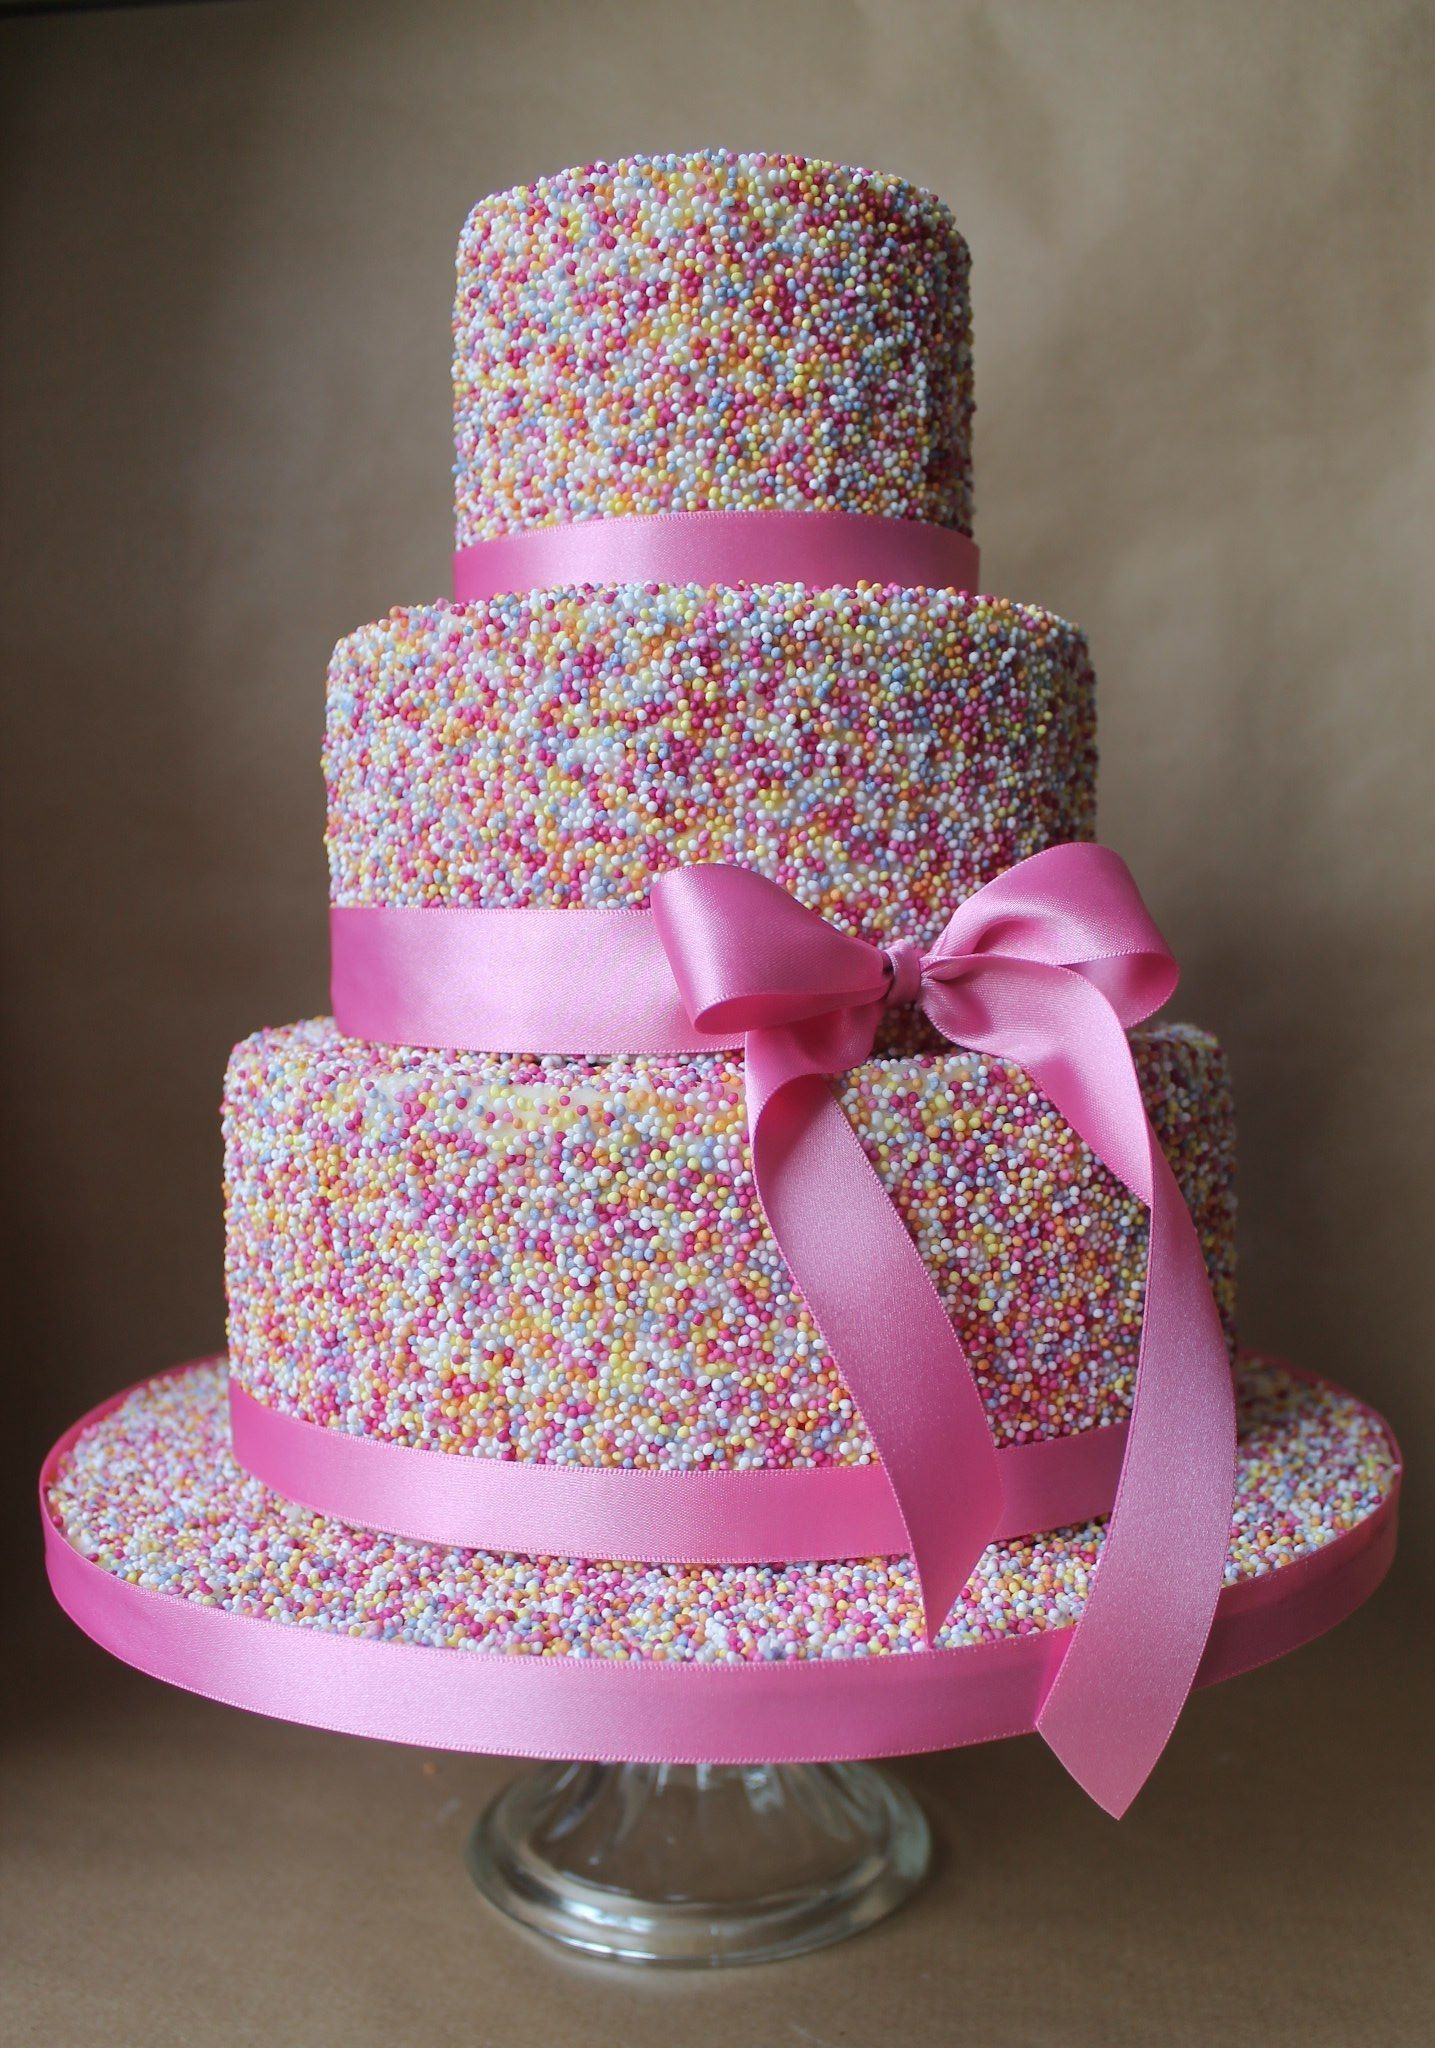 Confetti Wedding Cakes That\'ll Put a Smile on Your Face in 2018 ...